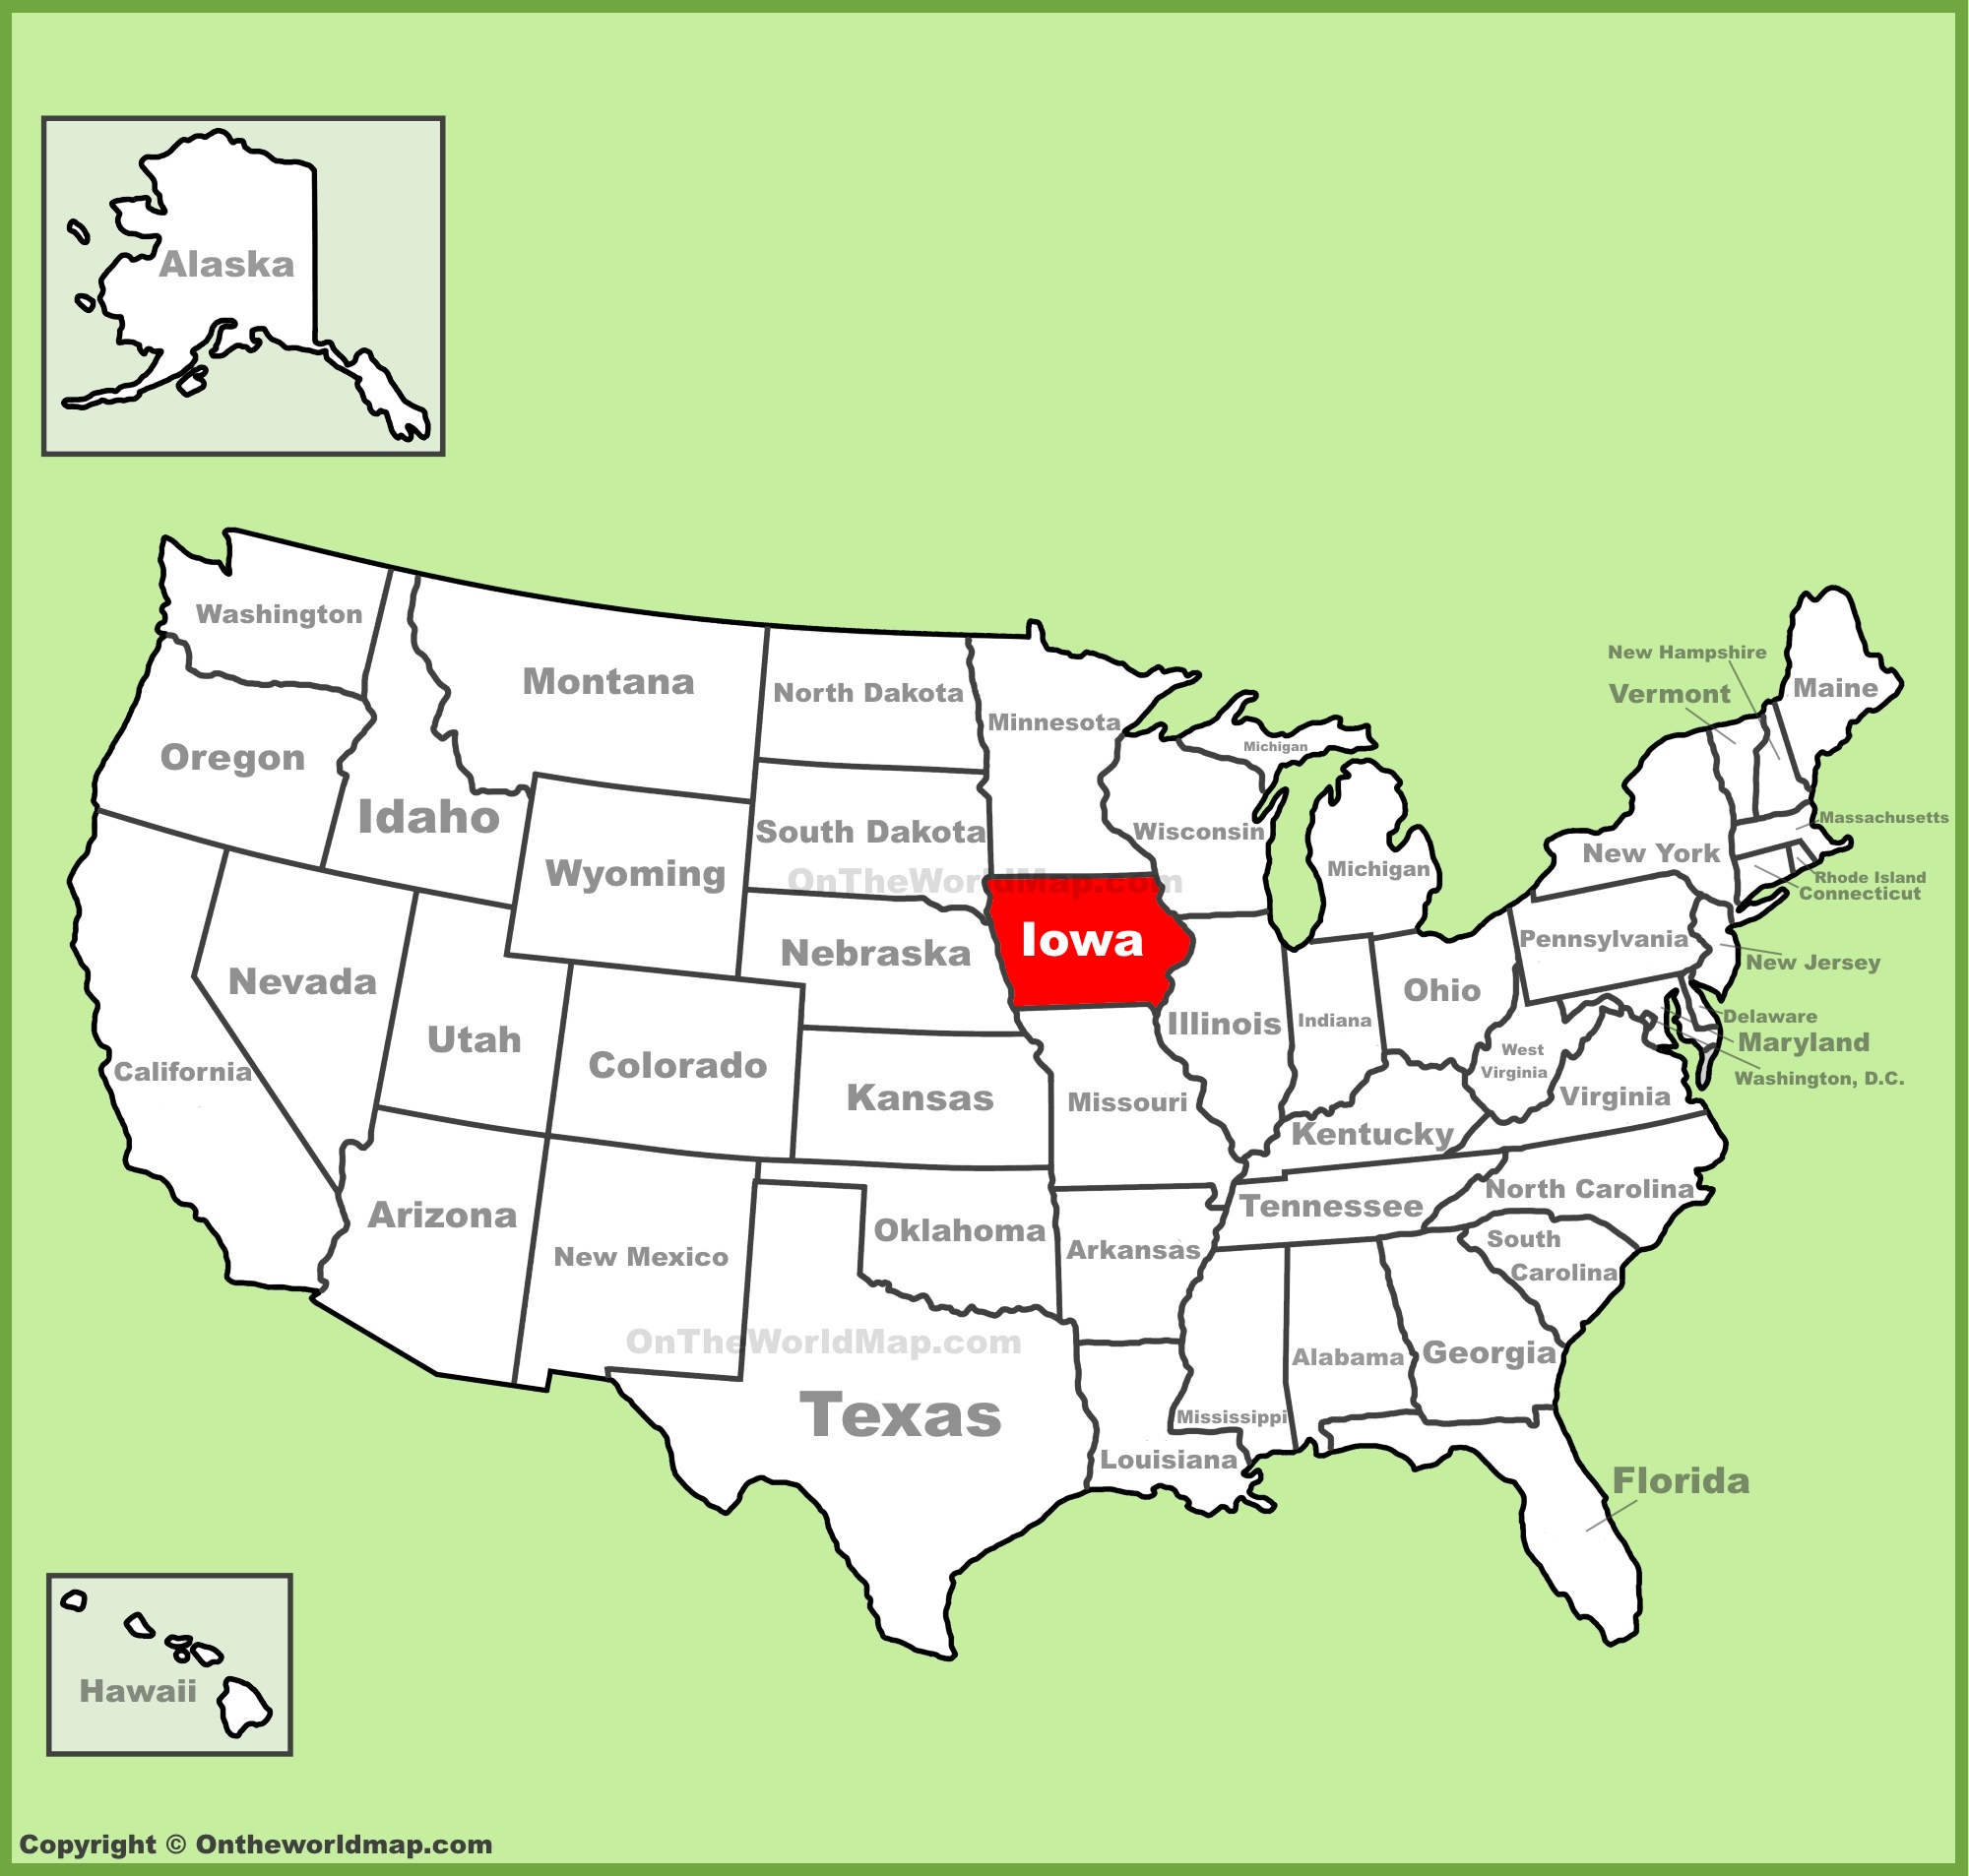 Iowa Map Usa Iowa State Maps | USA | Maps of Iowa (IA)